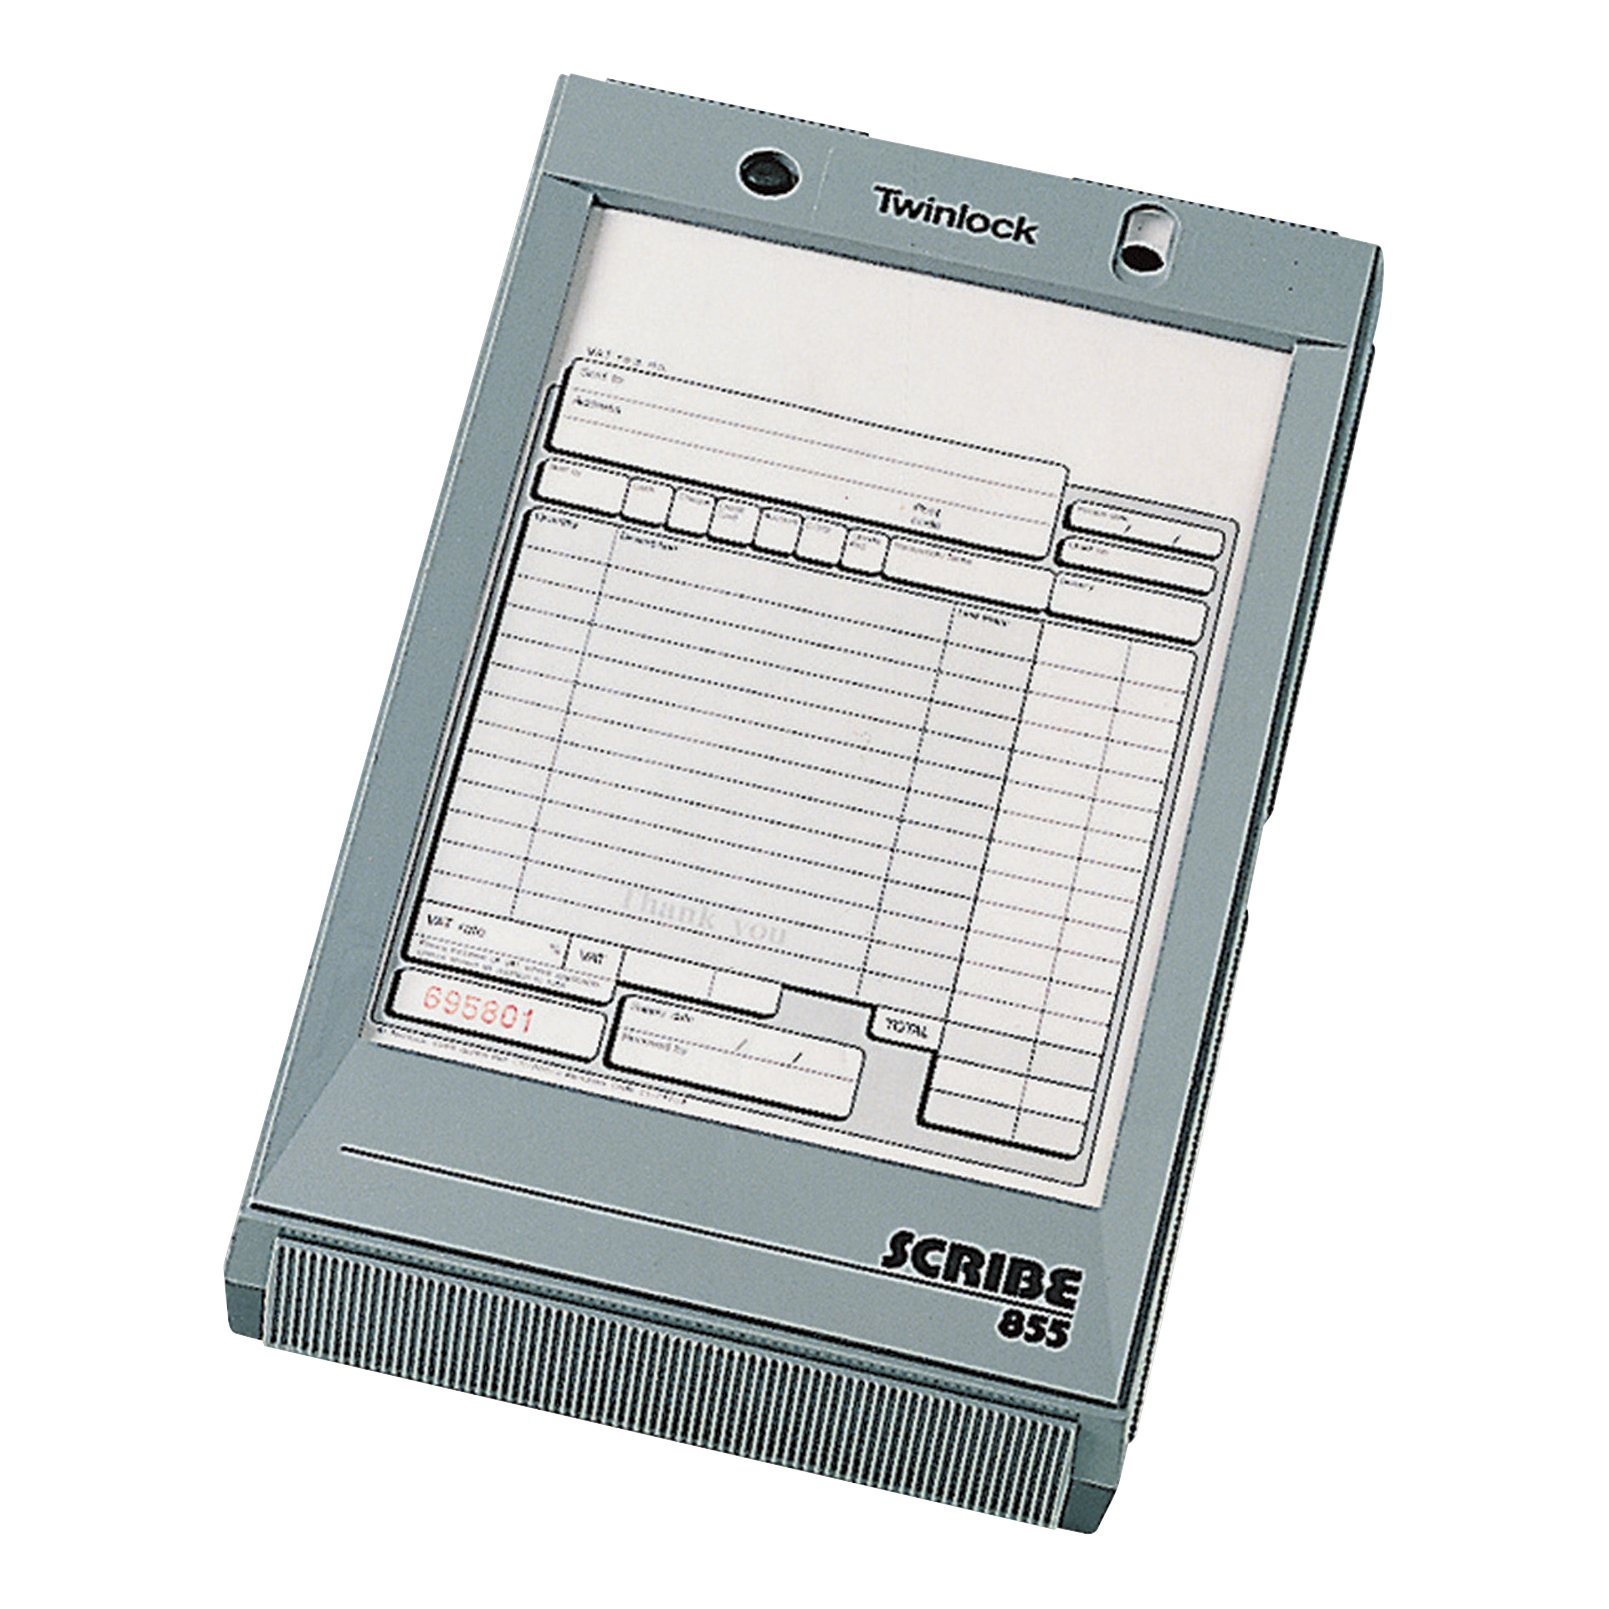 Multipurpose business book Twinlock Scribe 855 Scribe Register 264x161x49mm for Business Forms Ref 71011